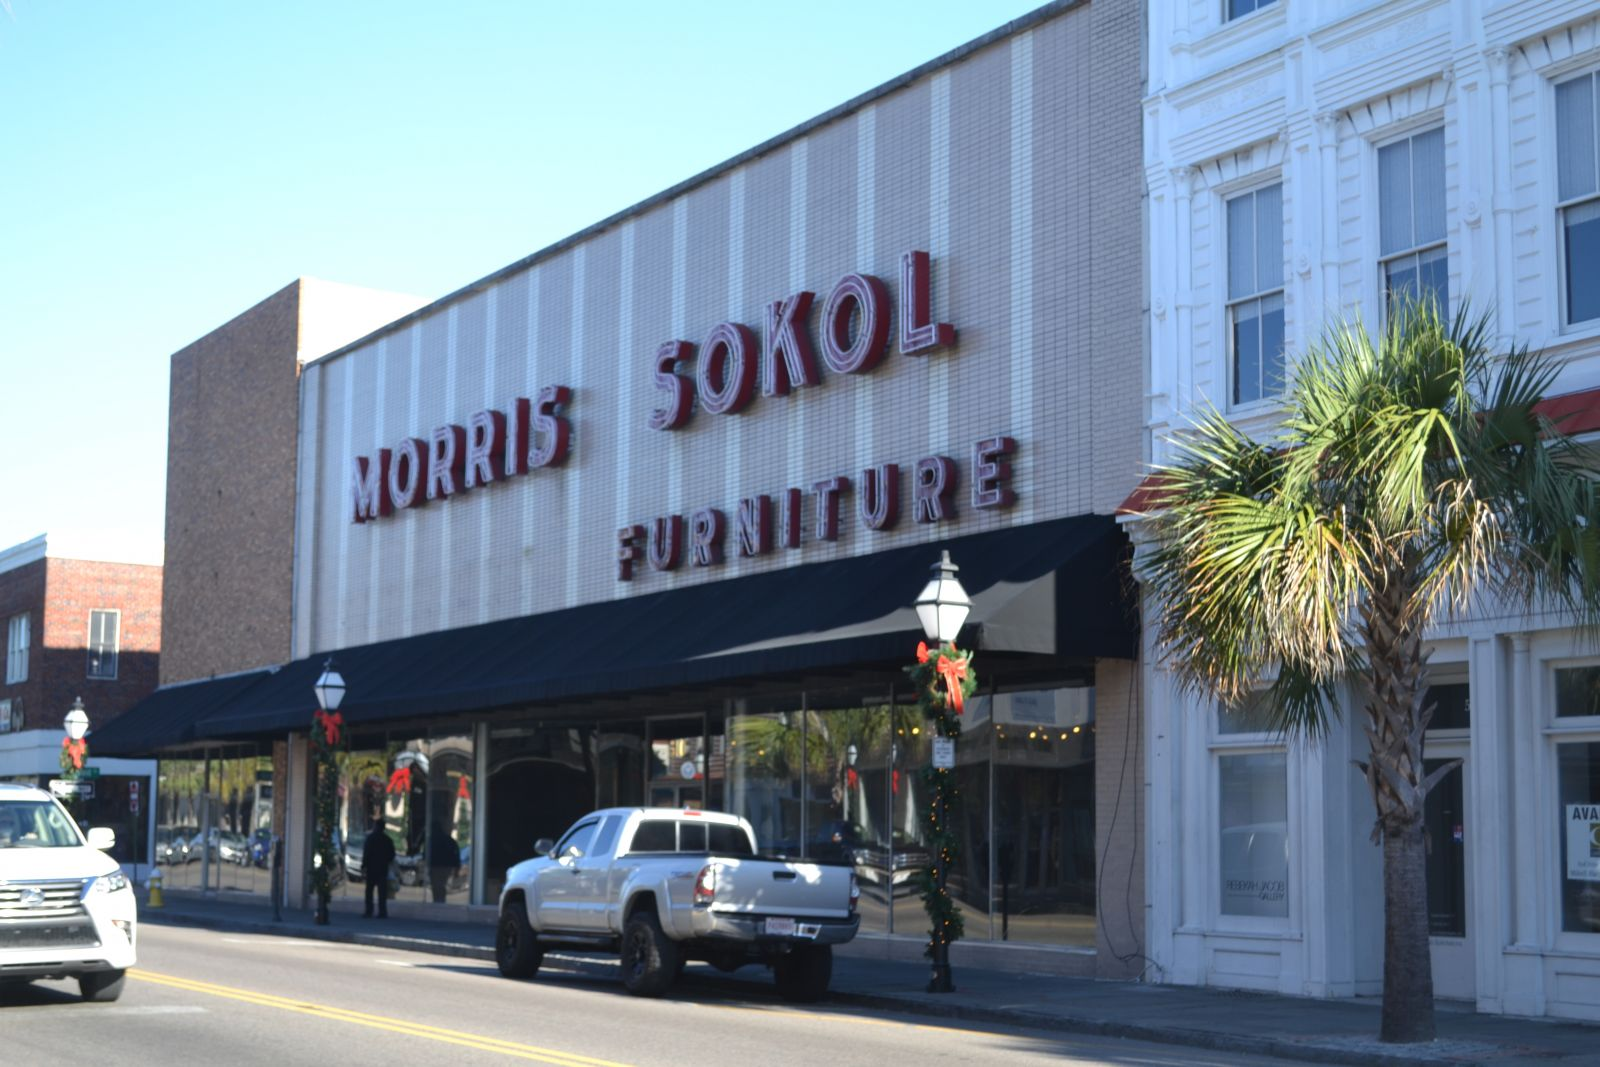 Exceptionnel Store Owner Joe Sokol Closed The Morris Sokol Furniture Store At 510 King  St. In